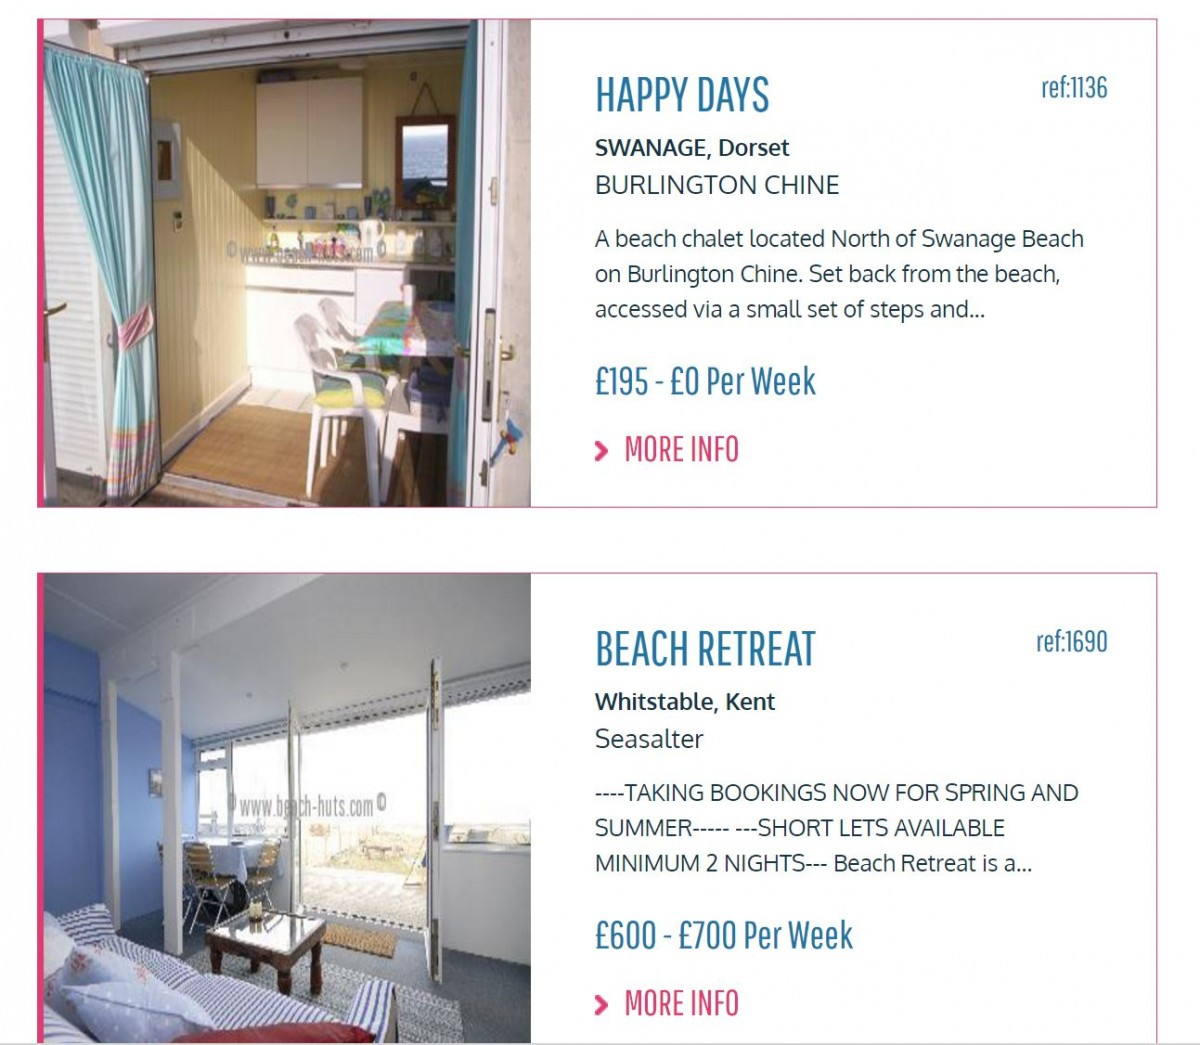 Best ways to advertise your beach hut hire for free - Beach Huts.com